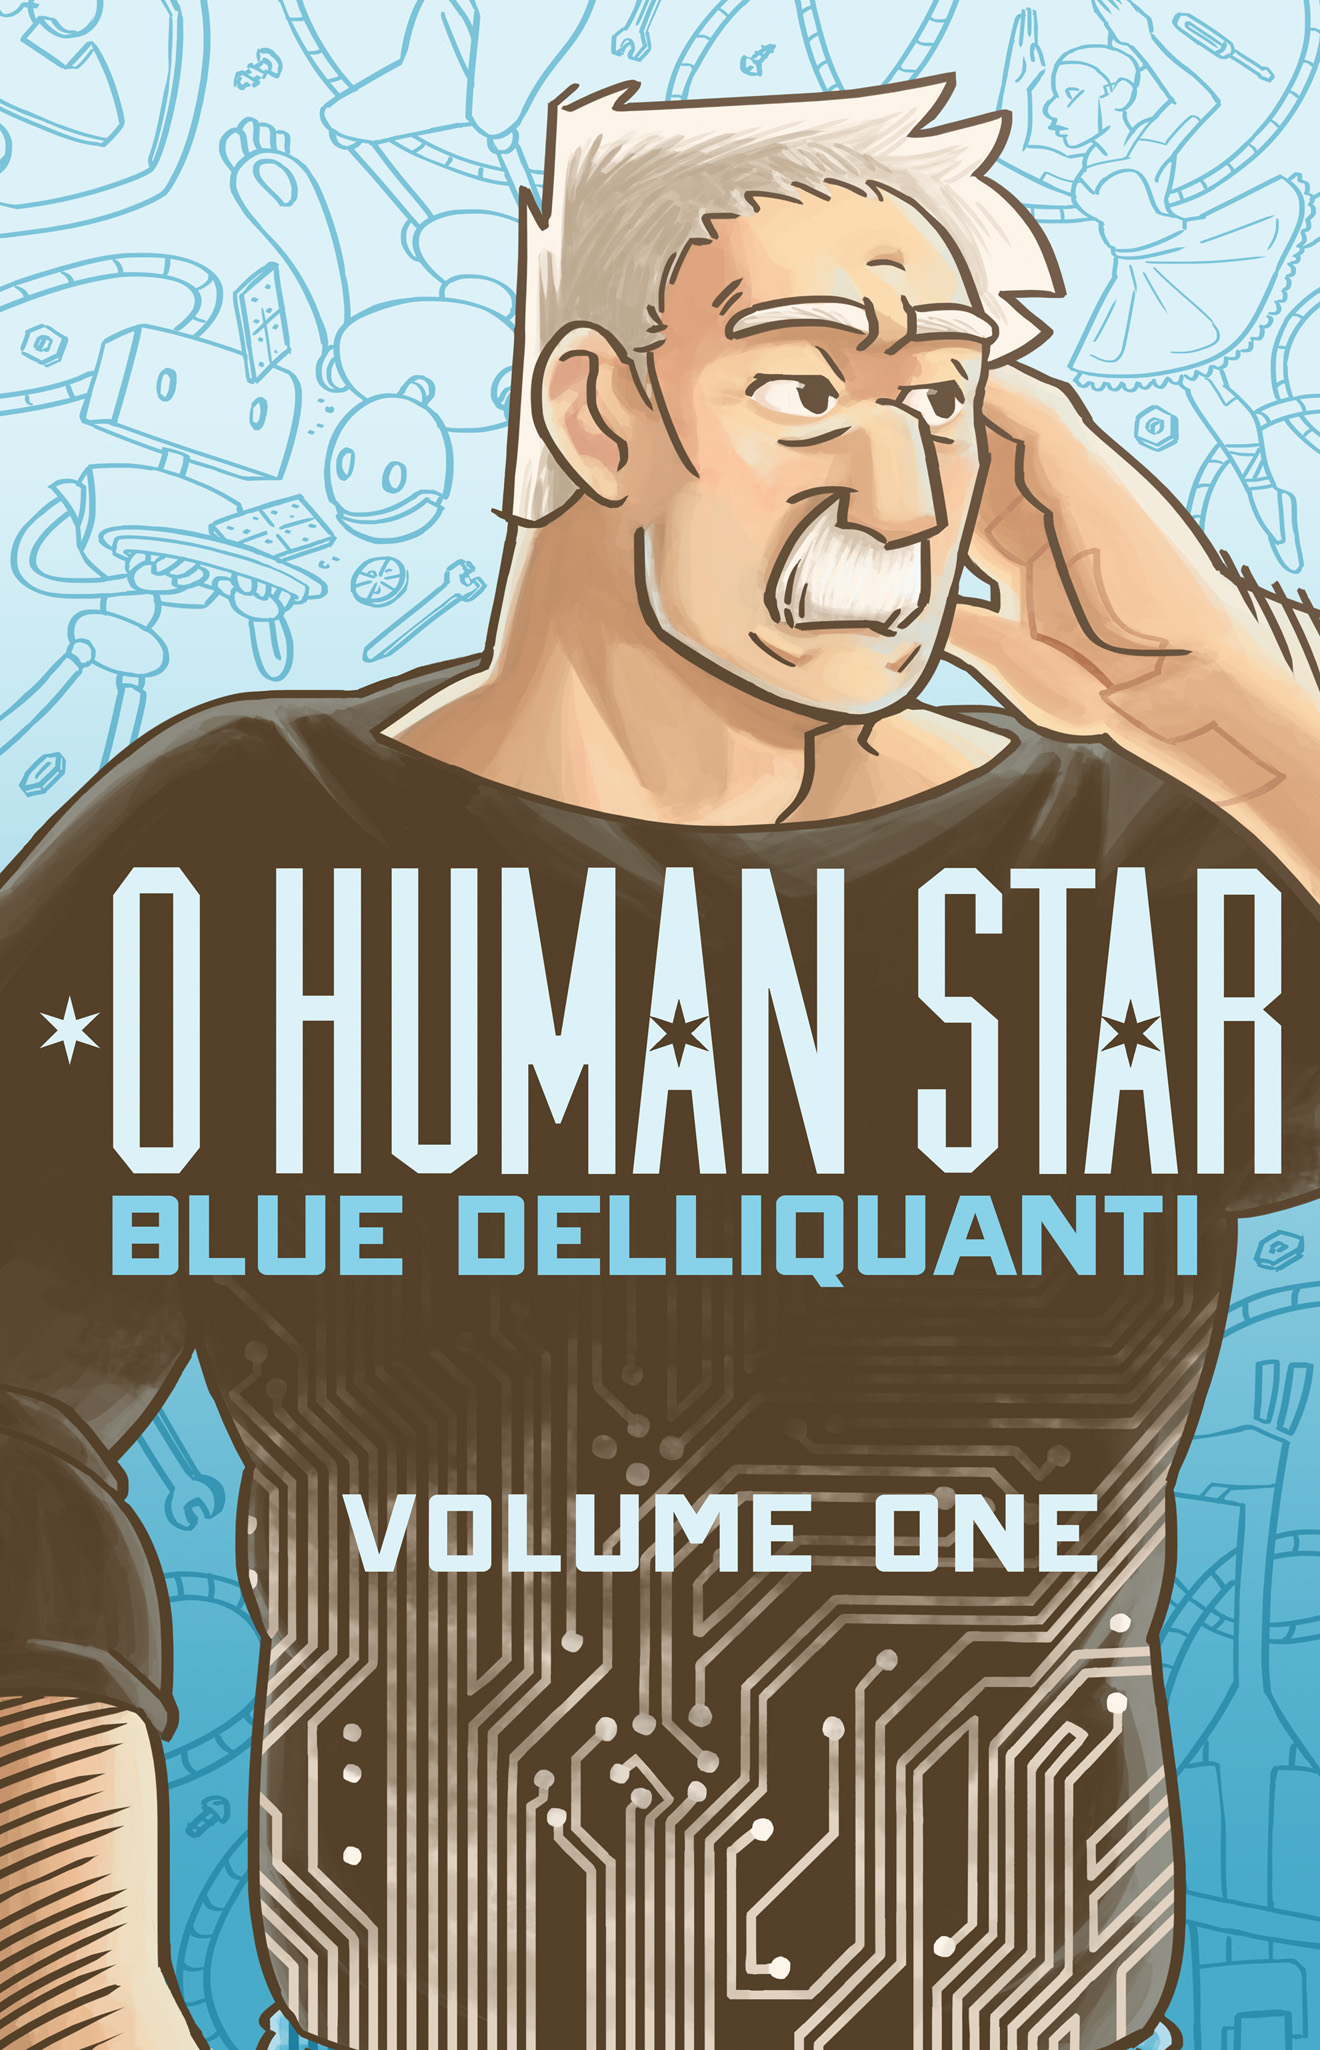 - O HUMAN STAR - Volume One(2015)2018 Prism Award Winner2017 James Tiptree Jr. Award longlist honoreeAlastair Sterling was the inventor who sparked the robot revolution. And because of his sudden death, he didn't see any of it.That is, until he wakes up 16 years later in a robot body that matches his old one exactly. Until he steps outside and finds a world utterly unlike the one he left behind – a world where robots live alongside their human neighbors and coexist in their cities. A world he helped create.Now Al must track down his old partner Brendan to find out who is responsible for Al's unexpected resurrection, but their reunion raises even more questions.Like who the robot living with Brendan is. And why she looks like Al. And how much of the past should stay in the past…